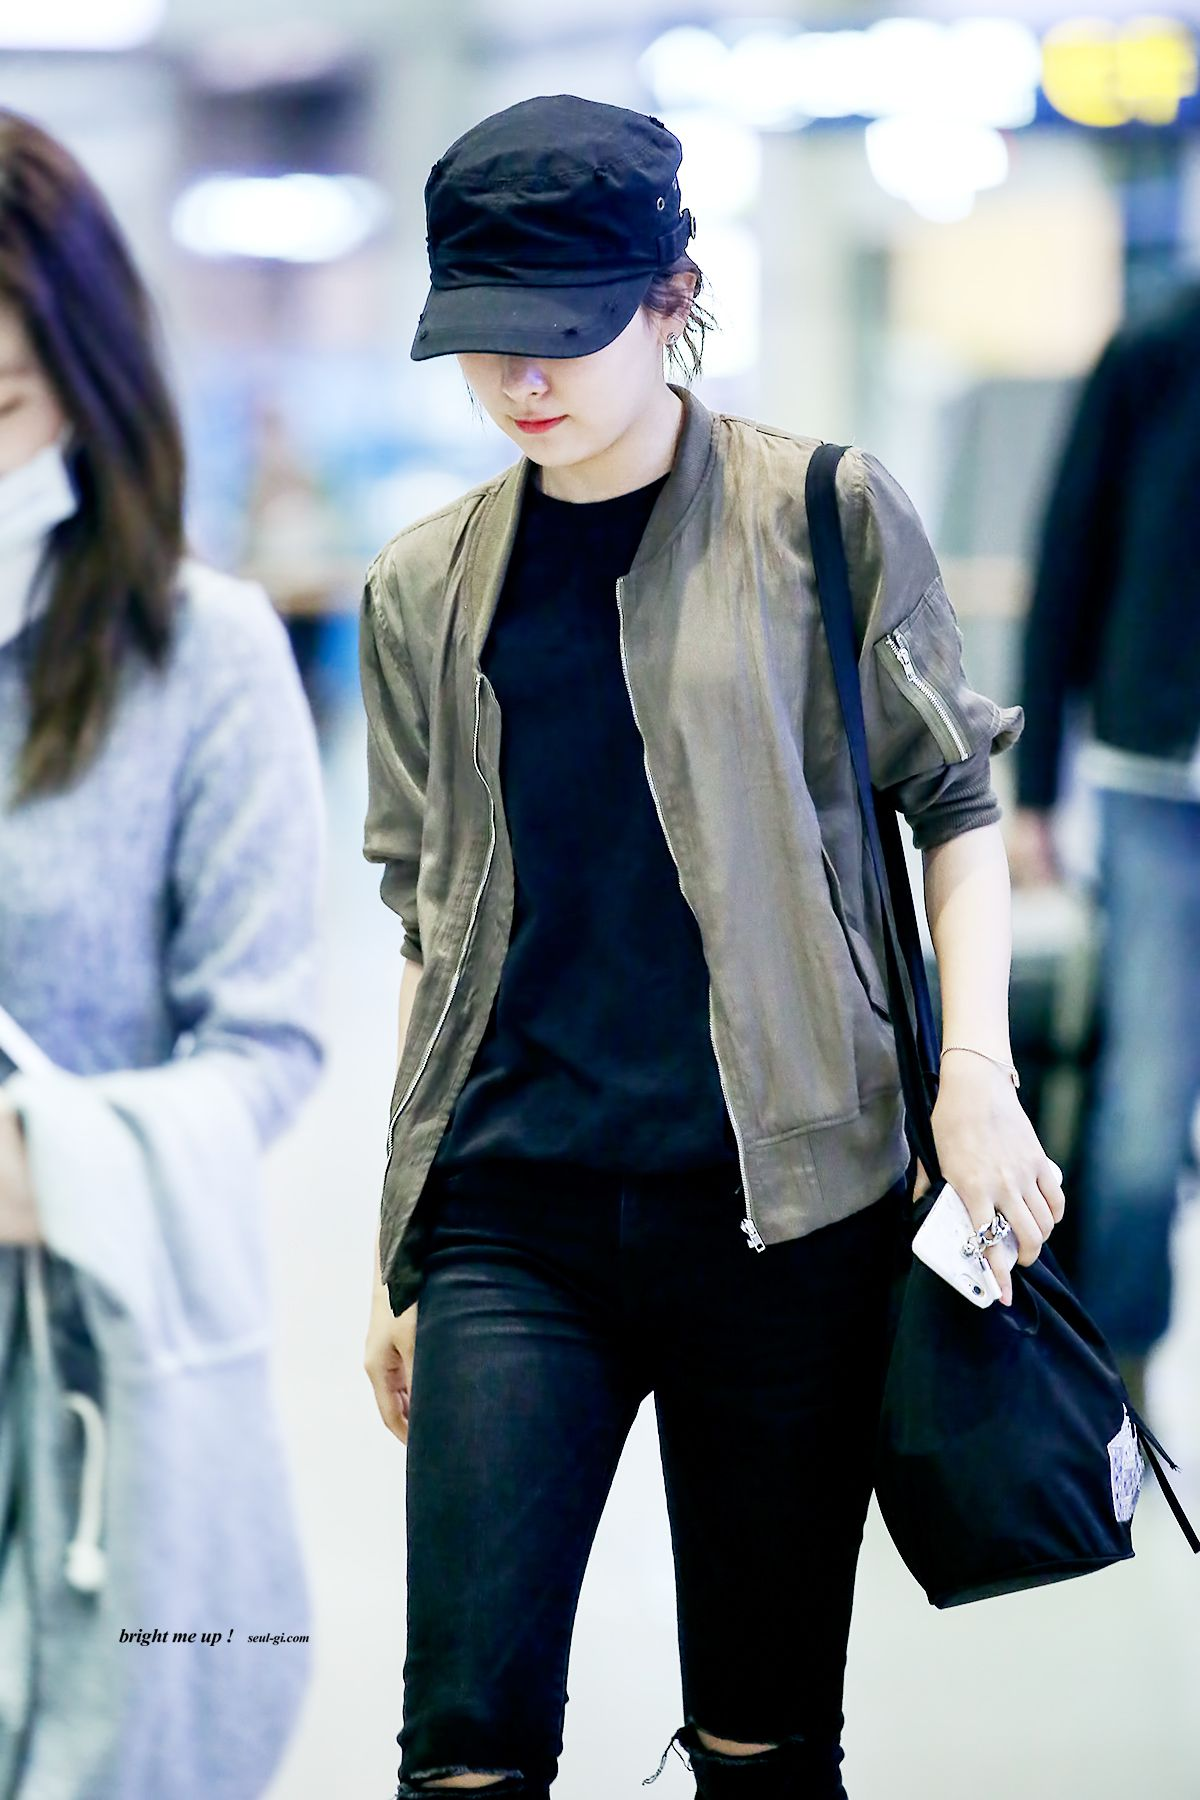 Seulgi Fashion Seulgi Airport Fashion Seulgi Airport 2016 Red Velvet Seulgi 2016 Seulgi ...